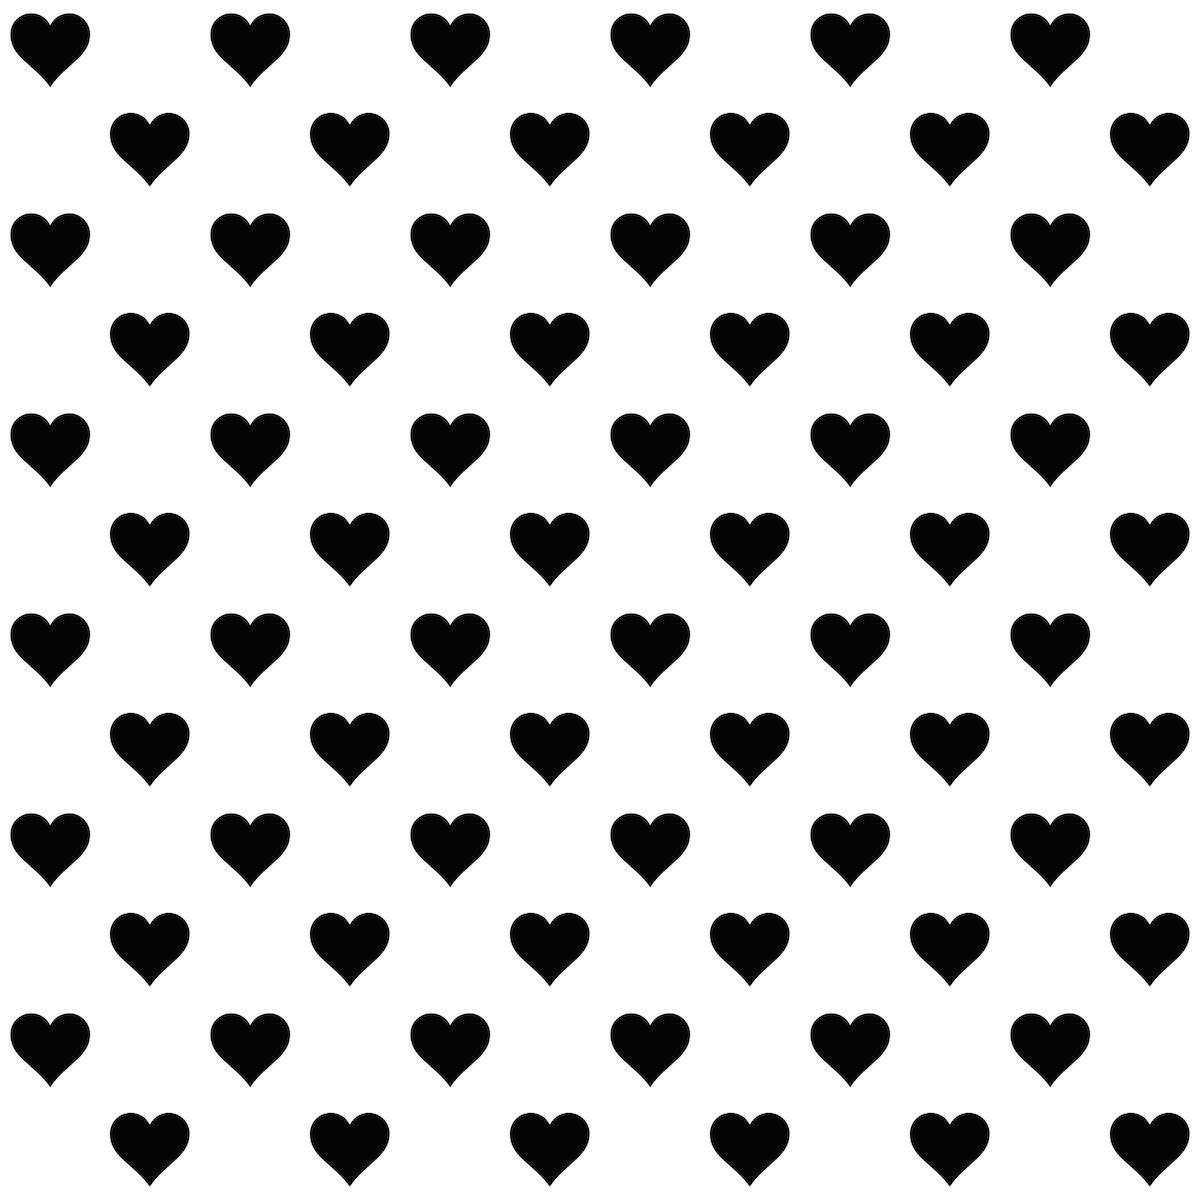 Free Hearts Black And White, Download Free Clip Art, Free Clip Art